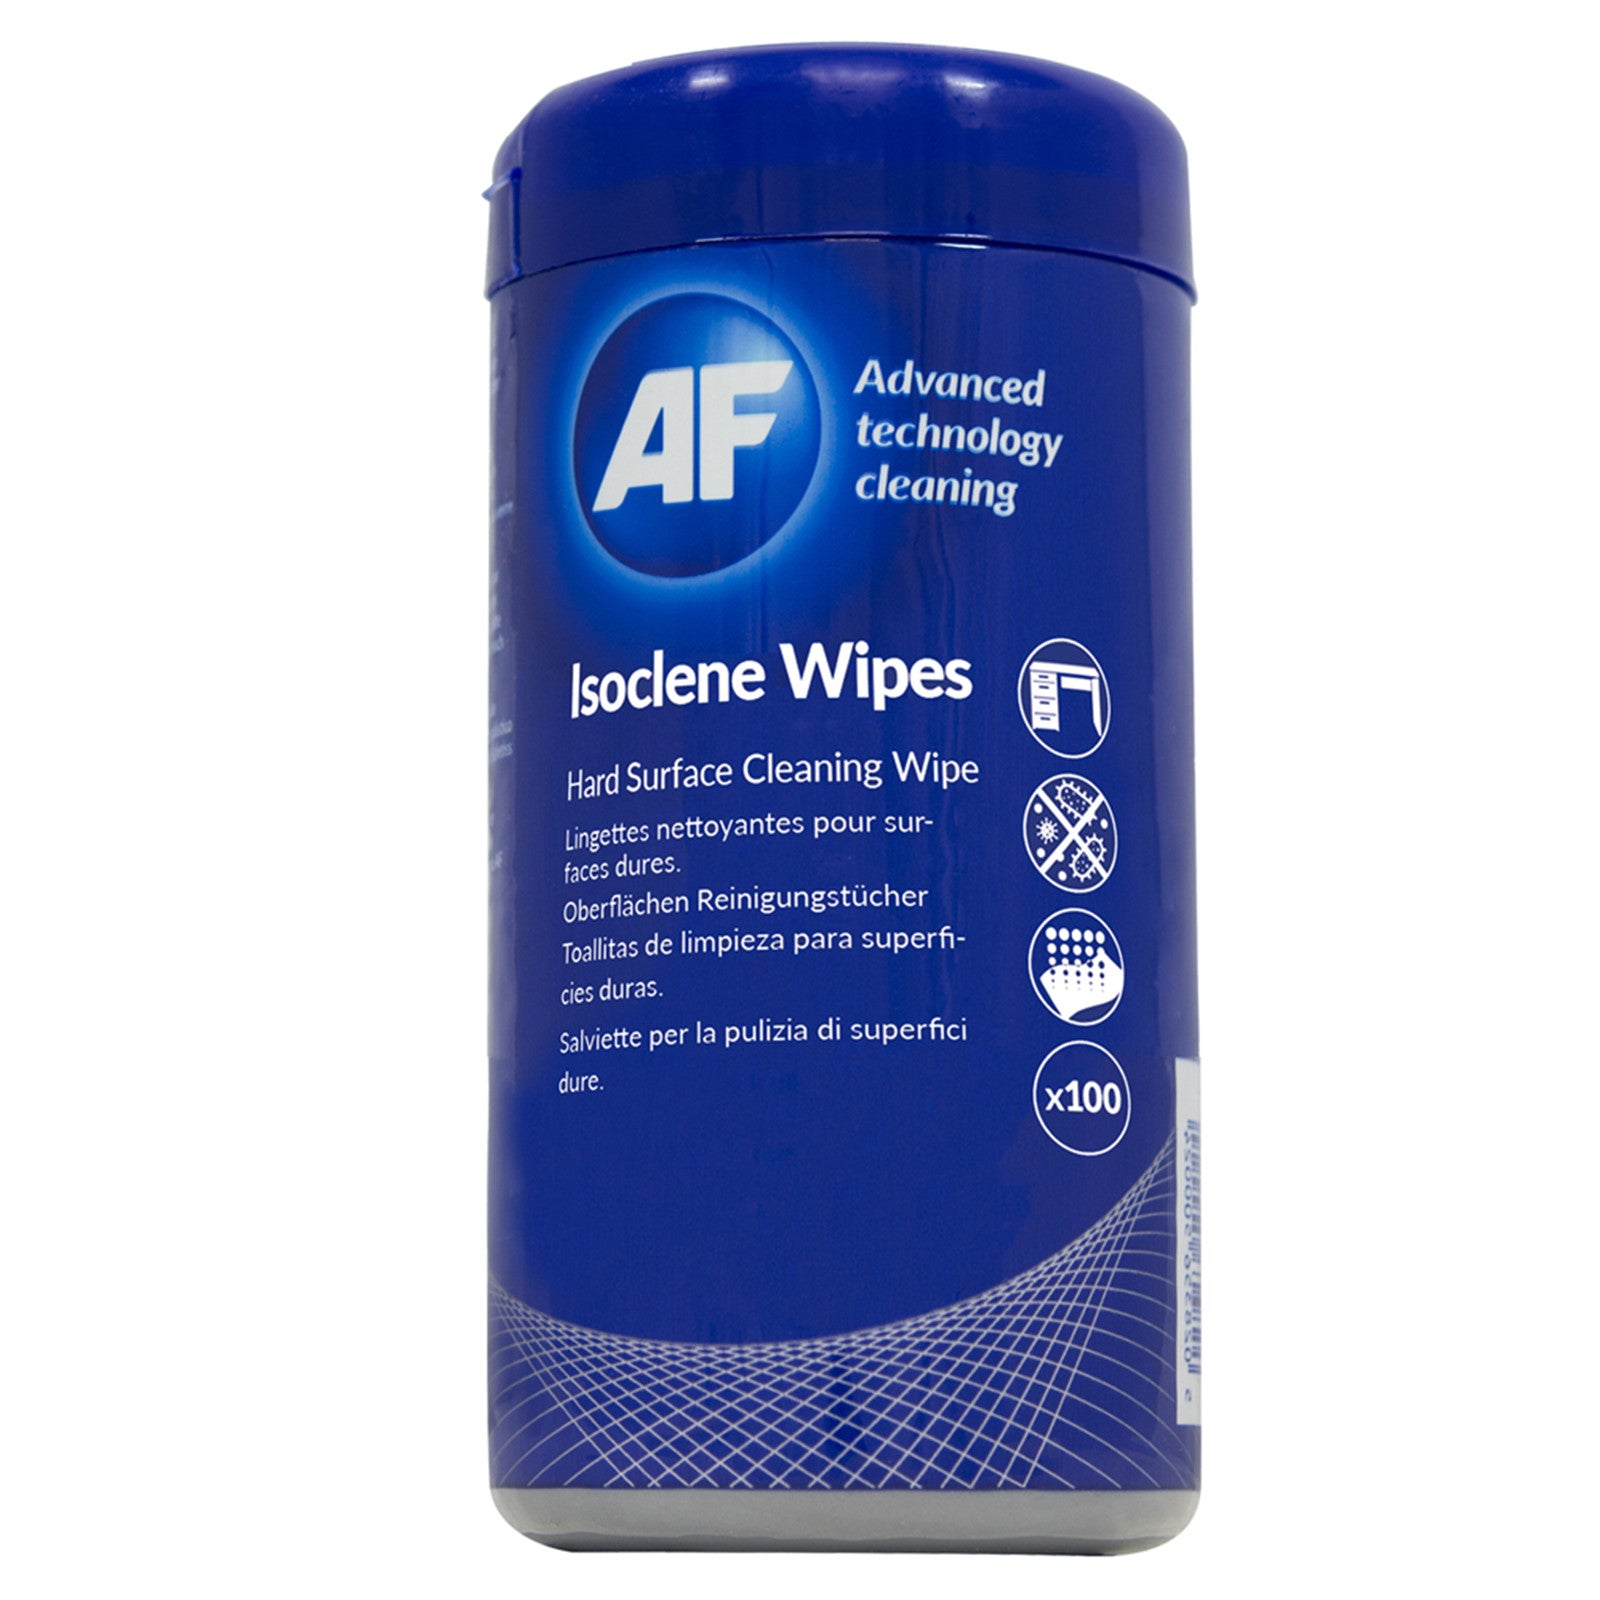 Isoclene Wipes